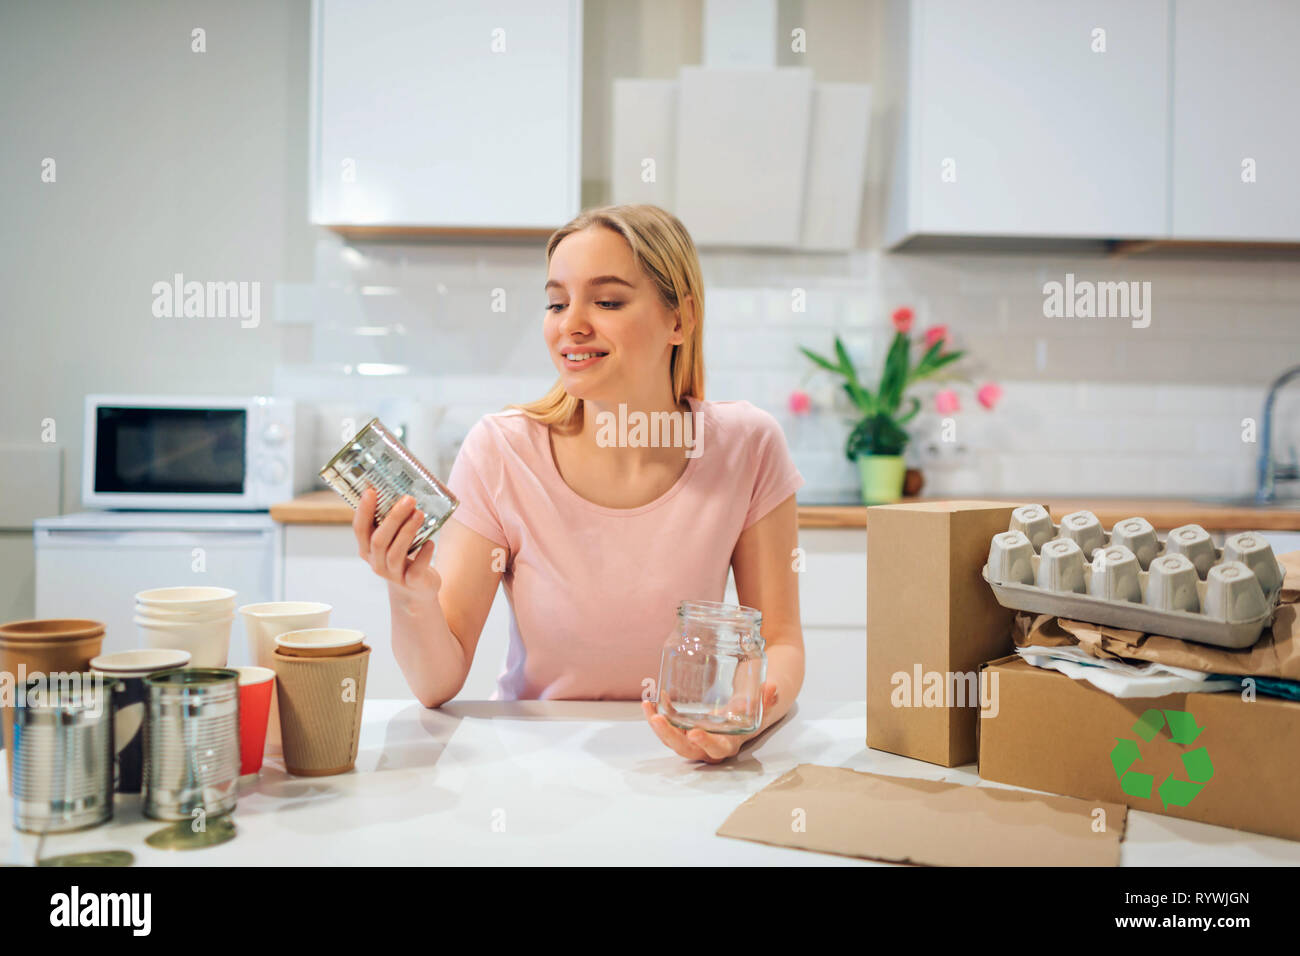 Recycling. Young smiling woman is sorting empty glass bottles and metal cans while sitting at the table with other waste at home - Stock Image